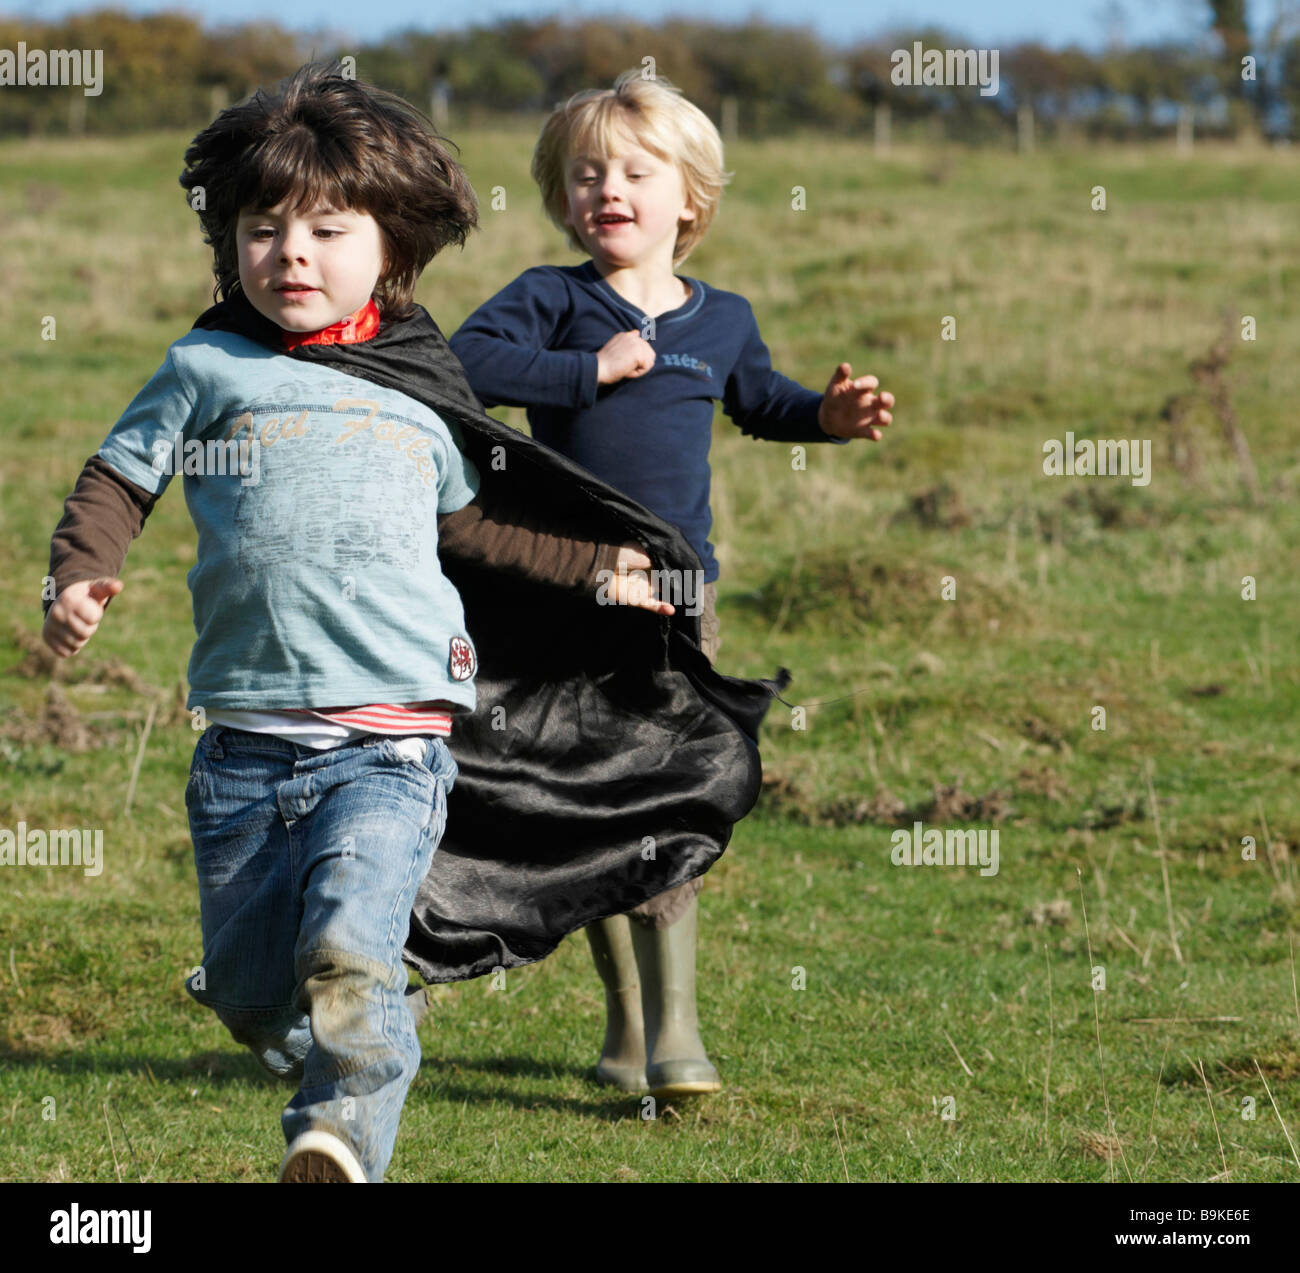 Super Hero boy and friend in field - Stock Image